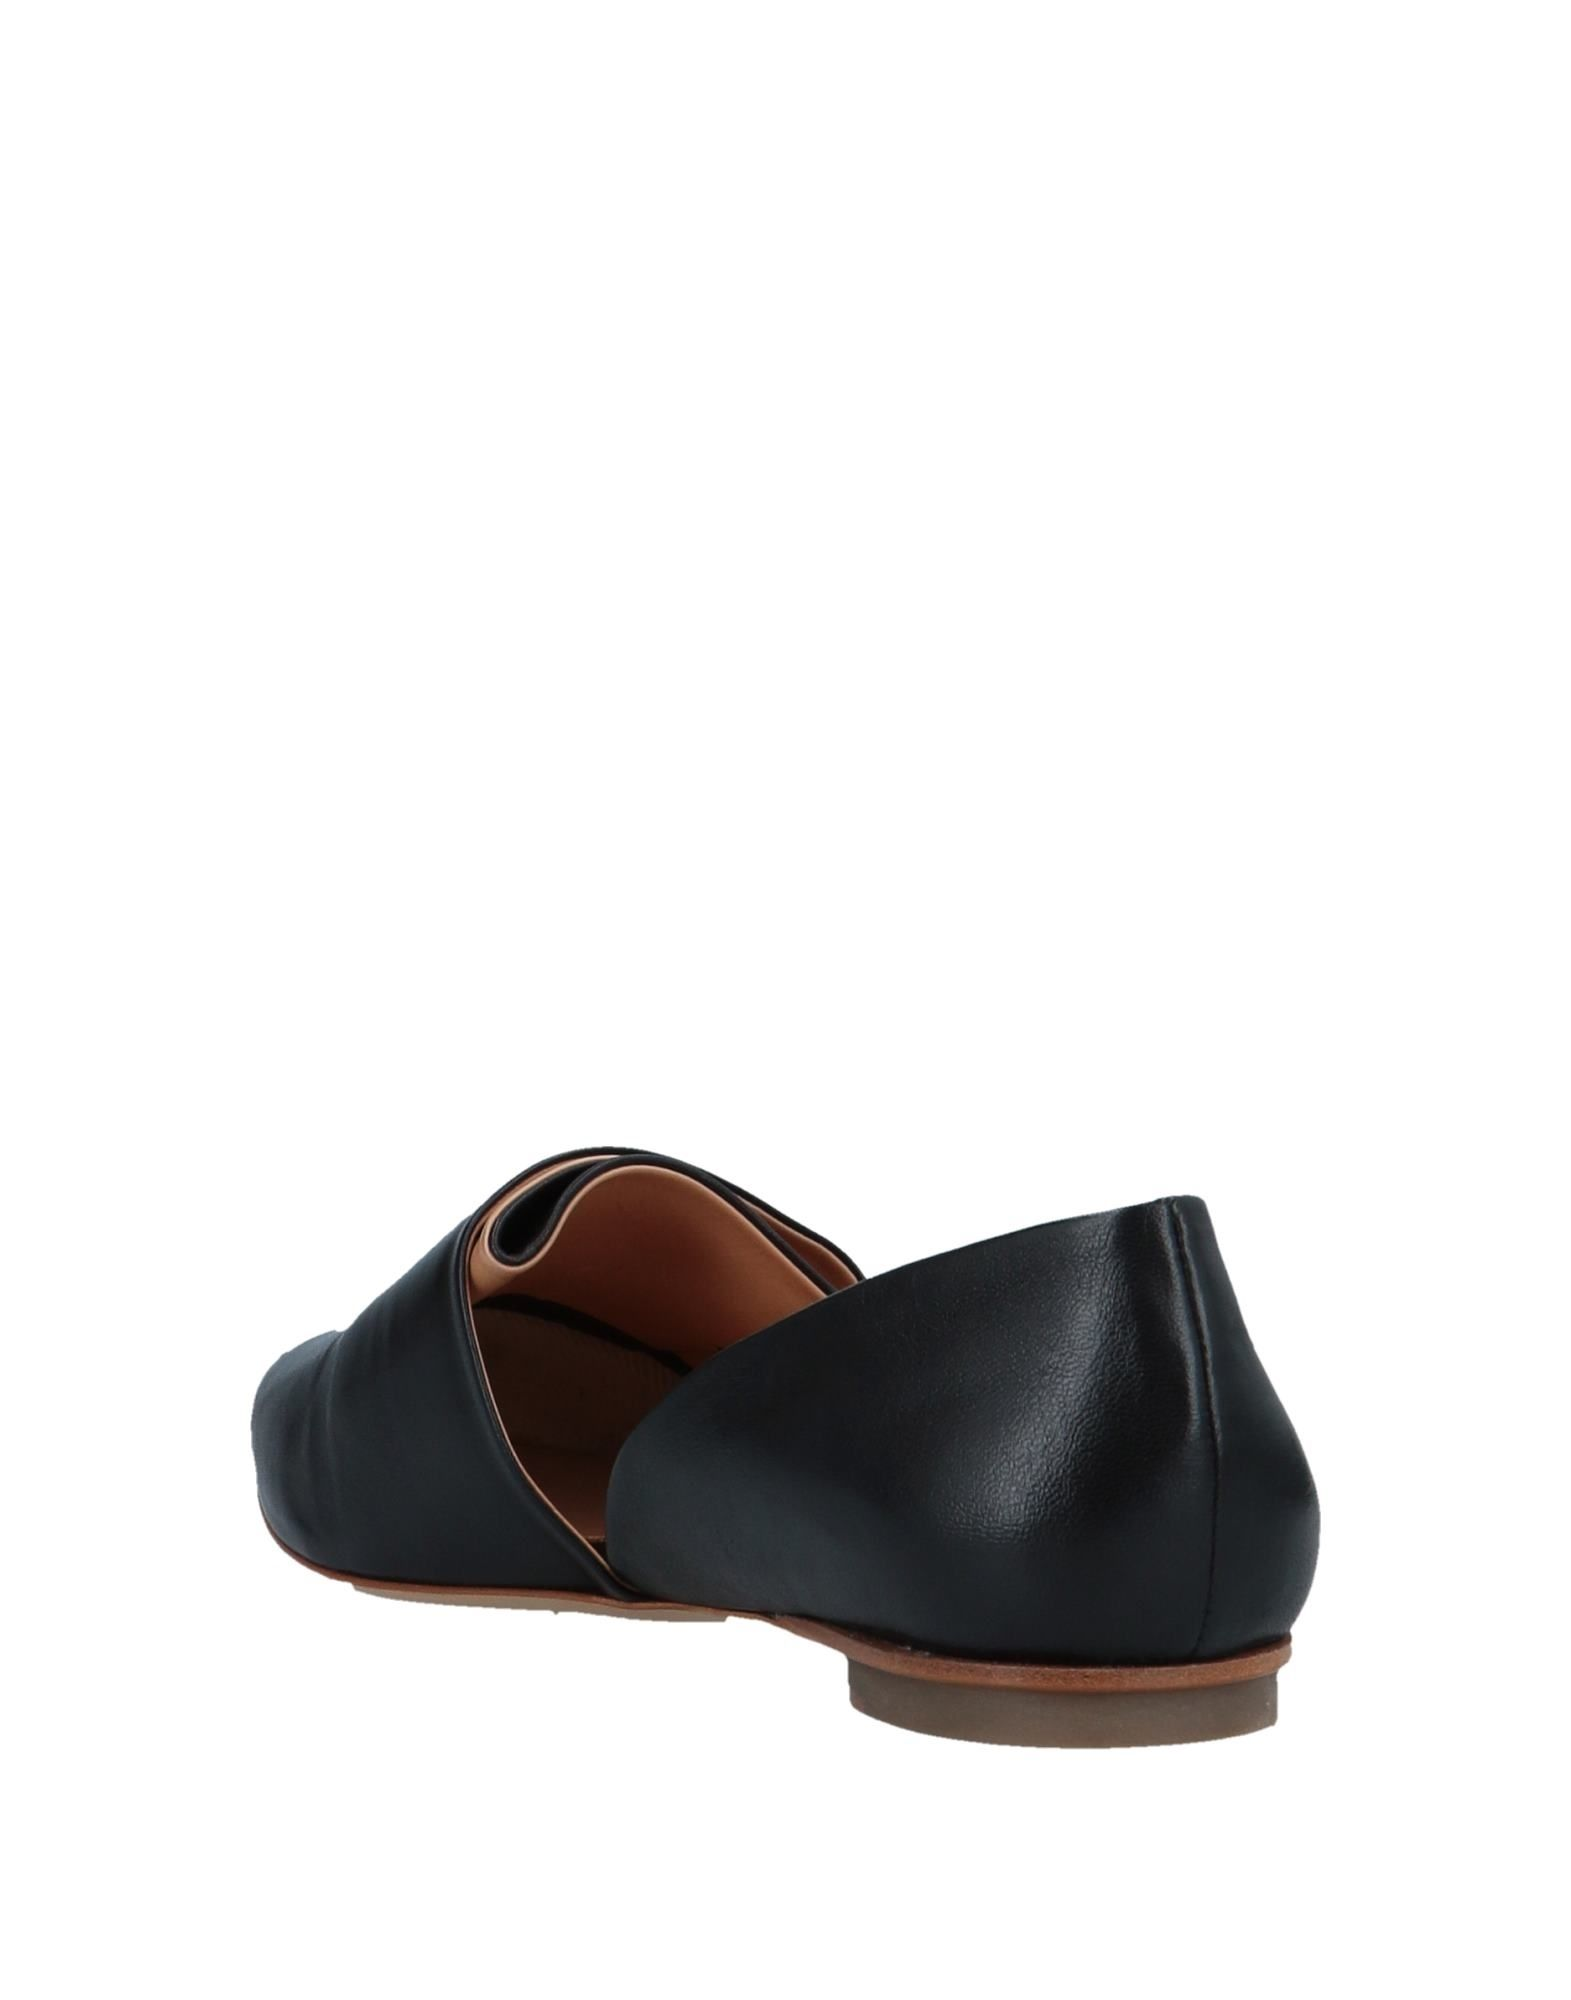 Halmanera Loafers Loafers Loafers - Women Halmanera Loafers online on  United Kingdom - 11576796MV 34292e